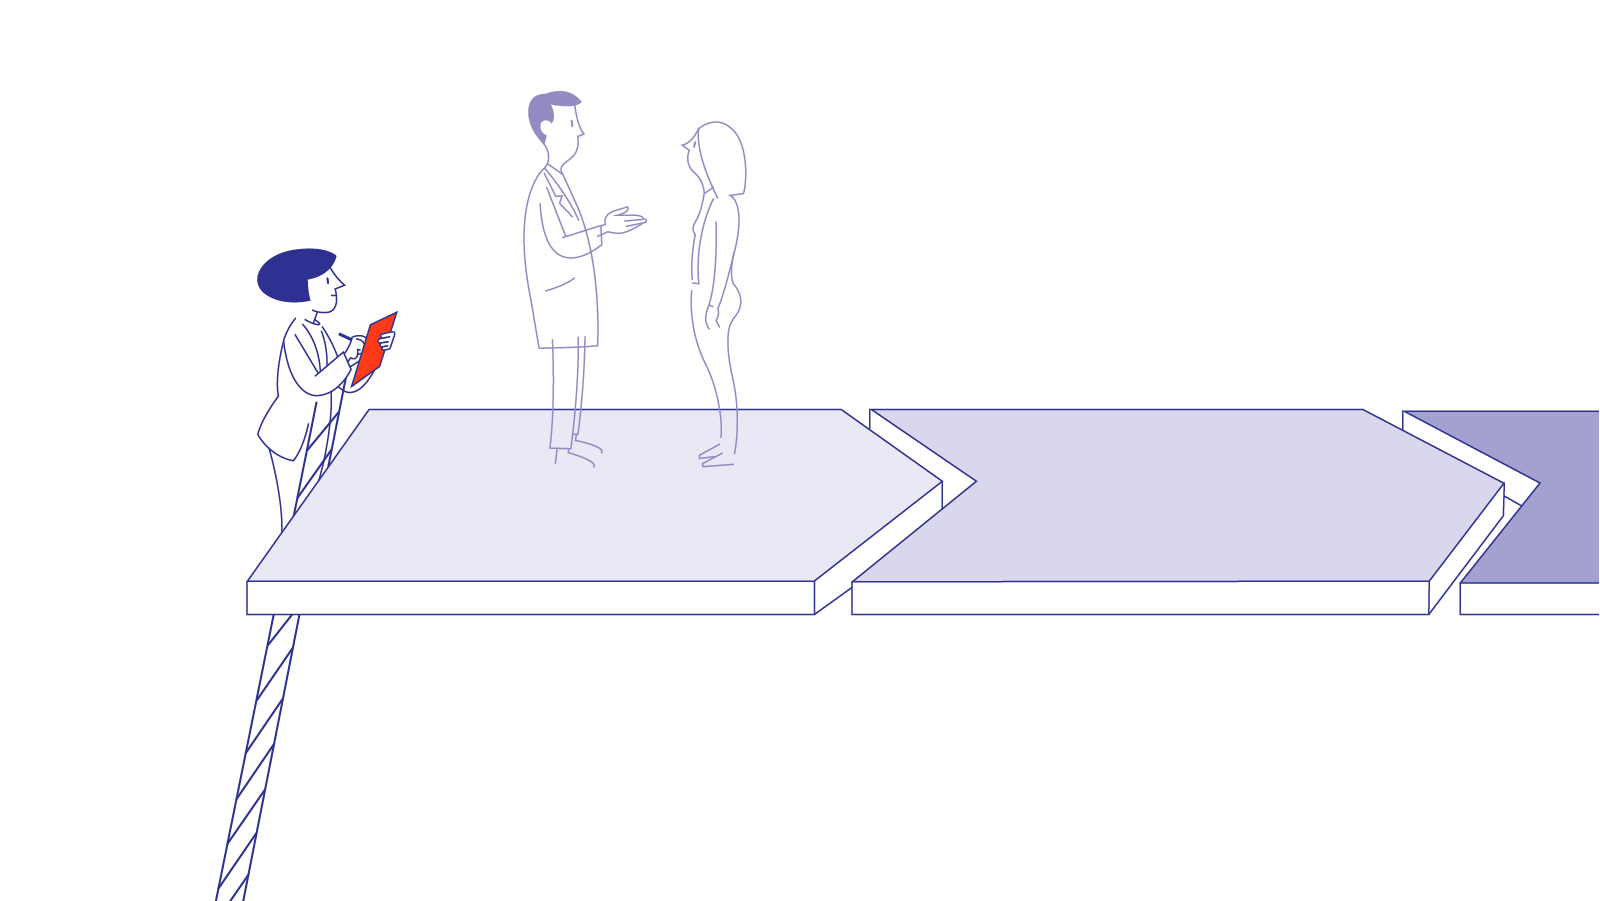 A depiction of a woman standing on a ladder with a clipboard taking notes as she observes a doctor and a patient having a conversation. The doctor and patient are standing on an arrow-shaped platform showing process movement.